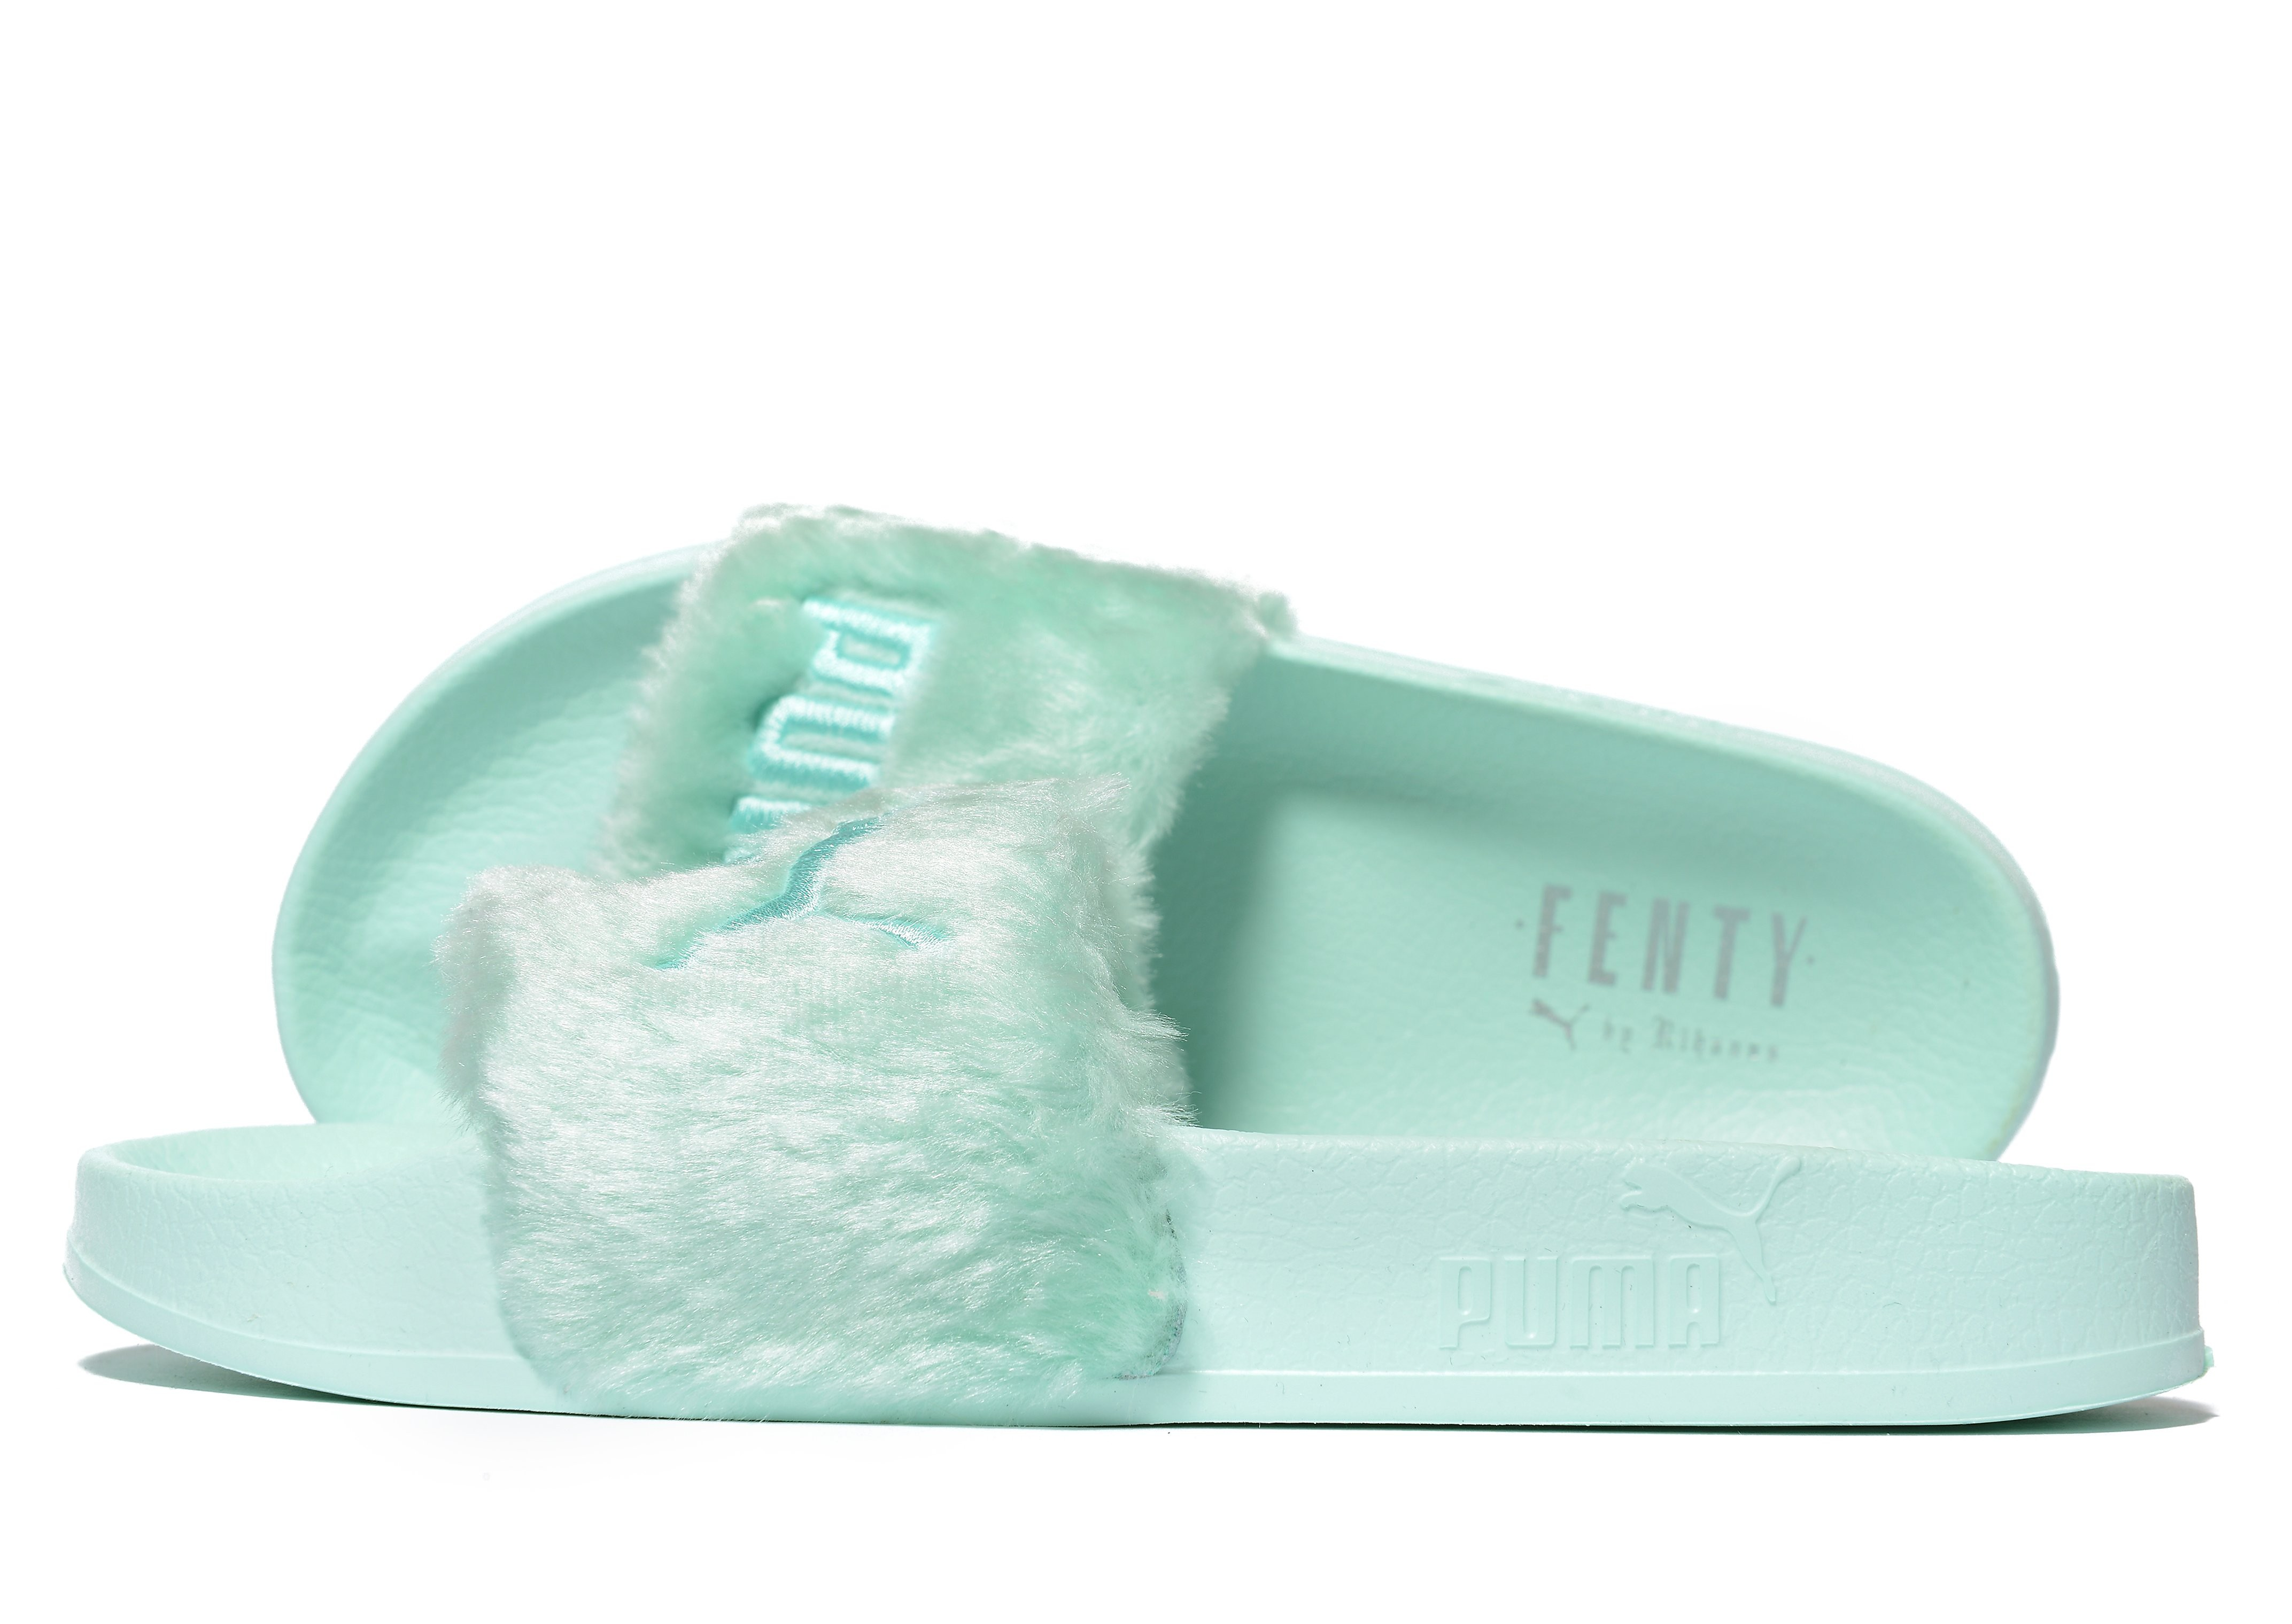 PUMA Fenty Fur Slides Women's